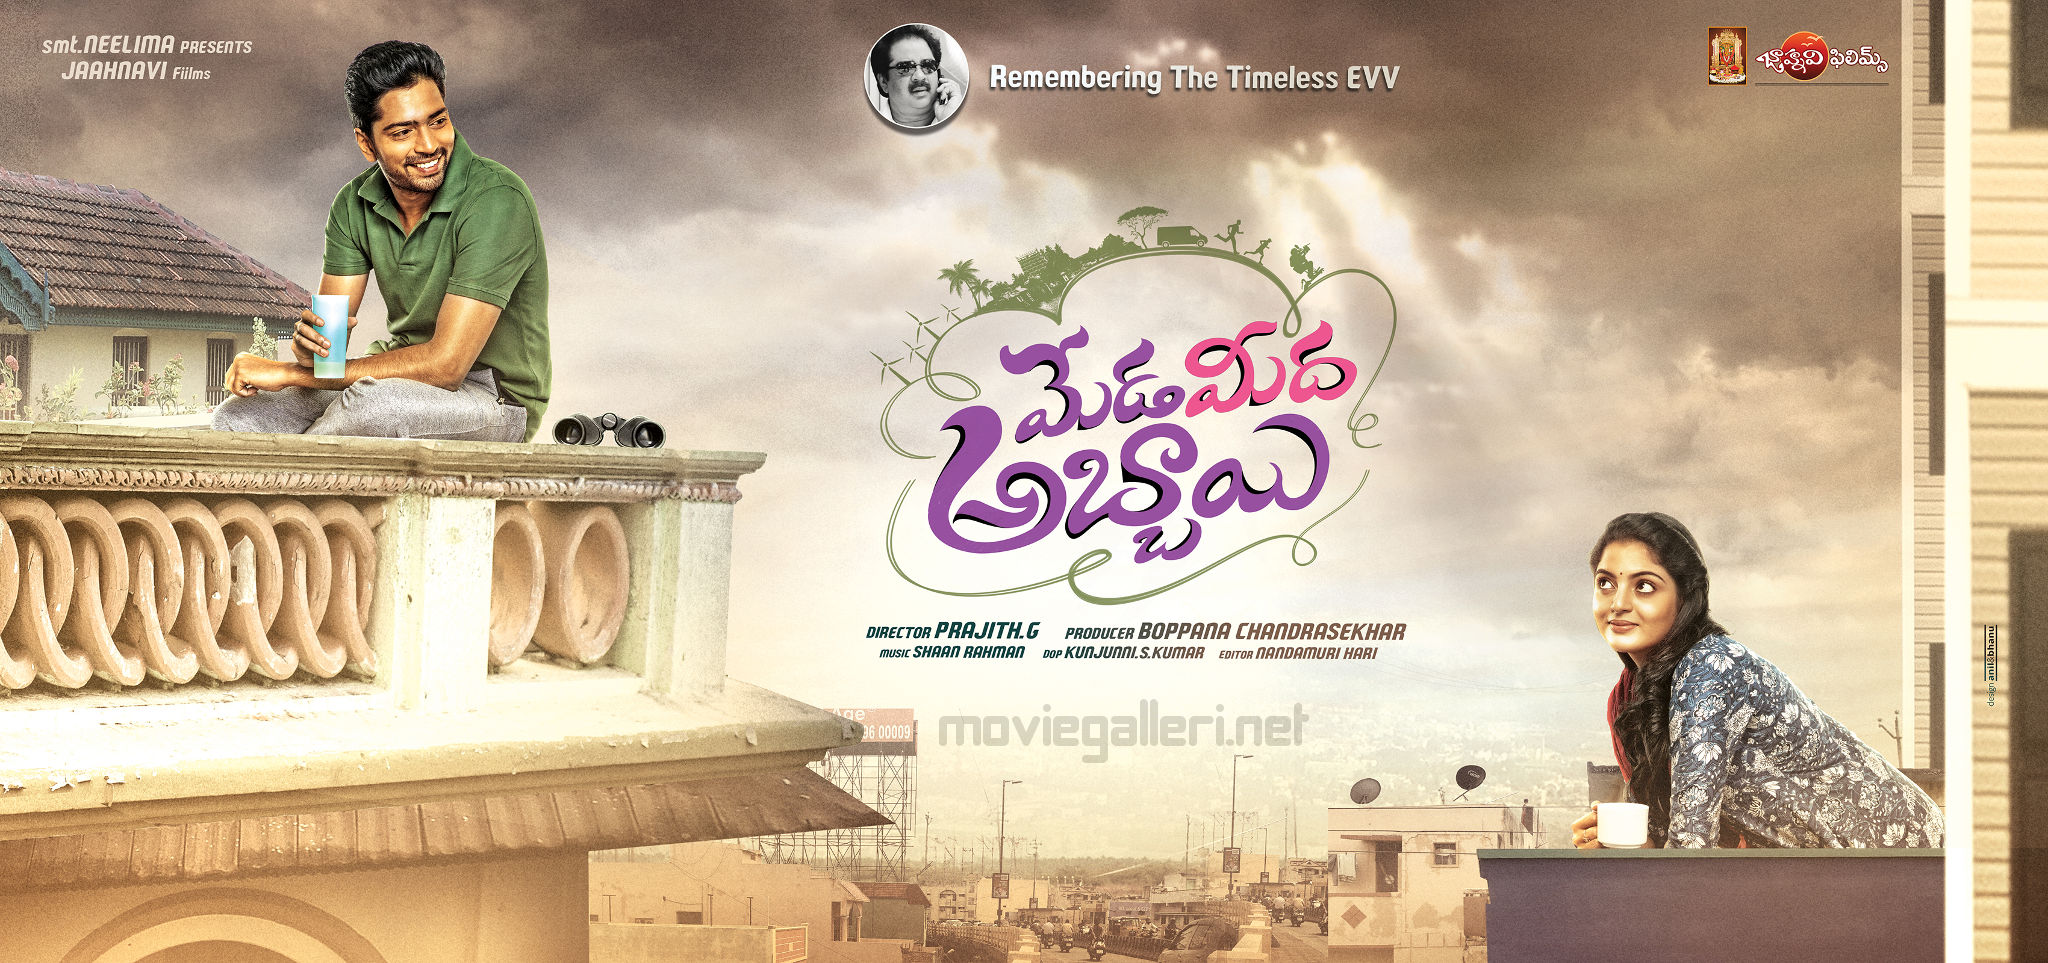 Allari Naresh, Nikhila Vimal in Meda Meeda Abbayi First Look Wallpaper HD